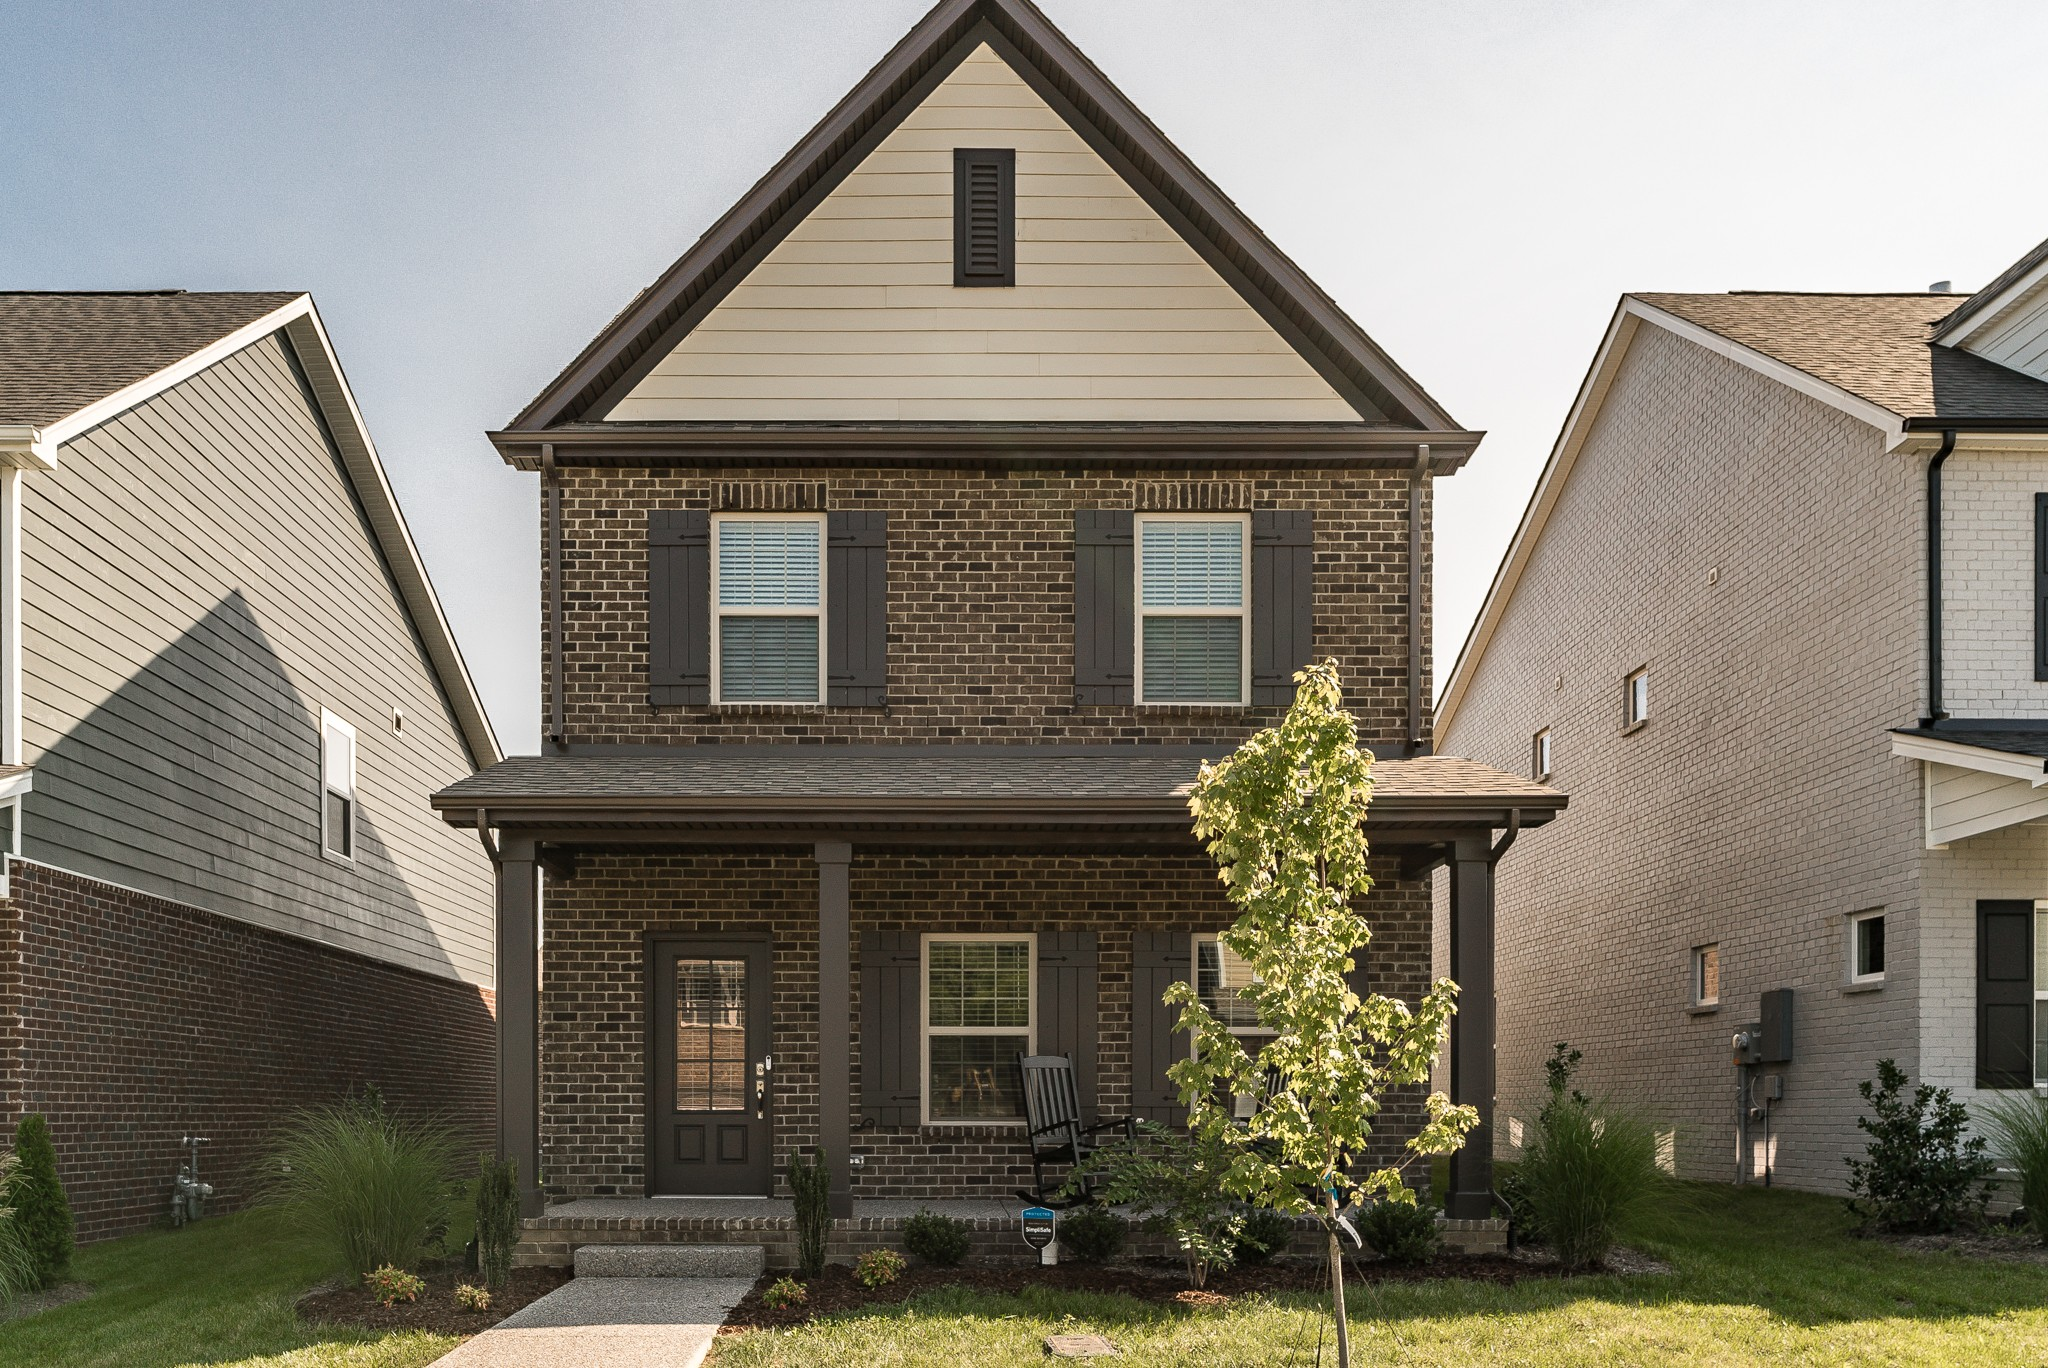 Move In Ready Two Story Monroe English Manor Home! 3 bedrooms, 2.5 baths, Bonus Room, Loft, and Office. Home Offers Granite, Tile Backsplash, Stainless Steel Appliances w/Gas Stove. Hardwood on Main Level and Hardwood Steps. Over-sized Tile shower, Raised Double Vanities in Primary Bathroom. Upgraded LVT in Laundry Room and Both Upstair Bathrooms. This Home has it ALL!